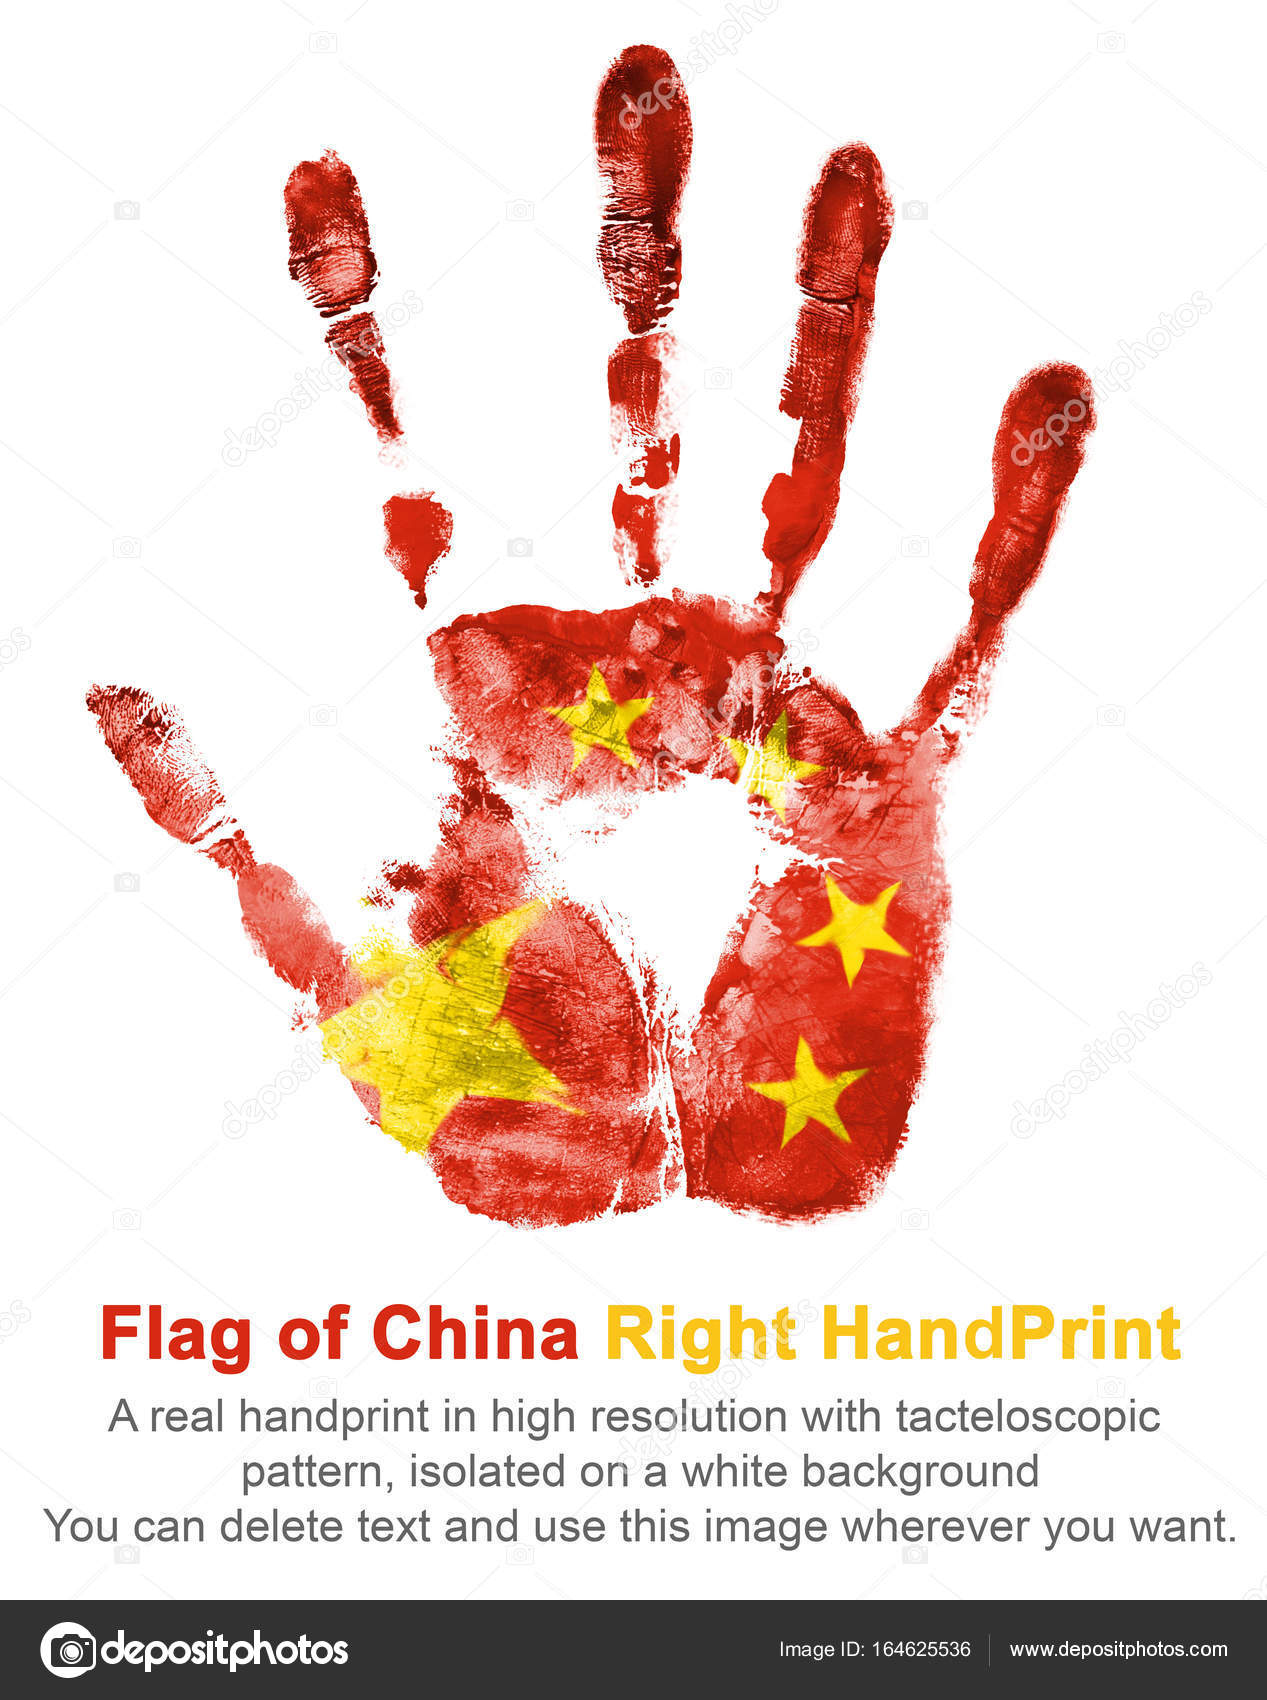 right hand print of china flag color the imprint of national